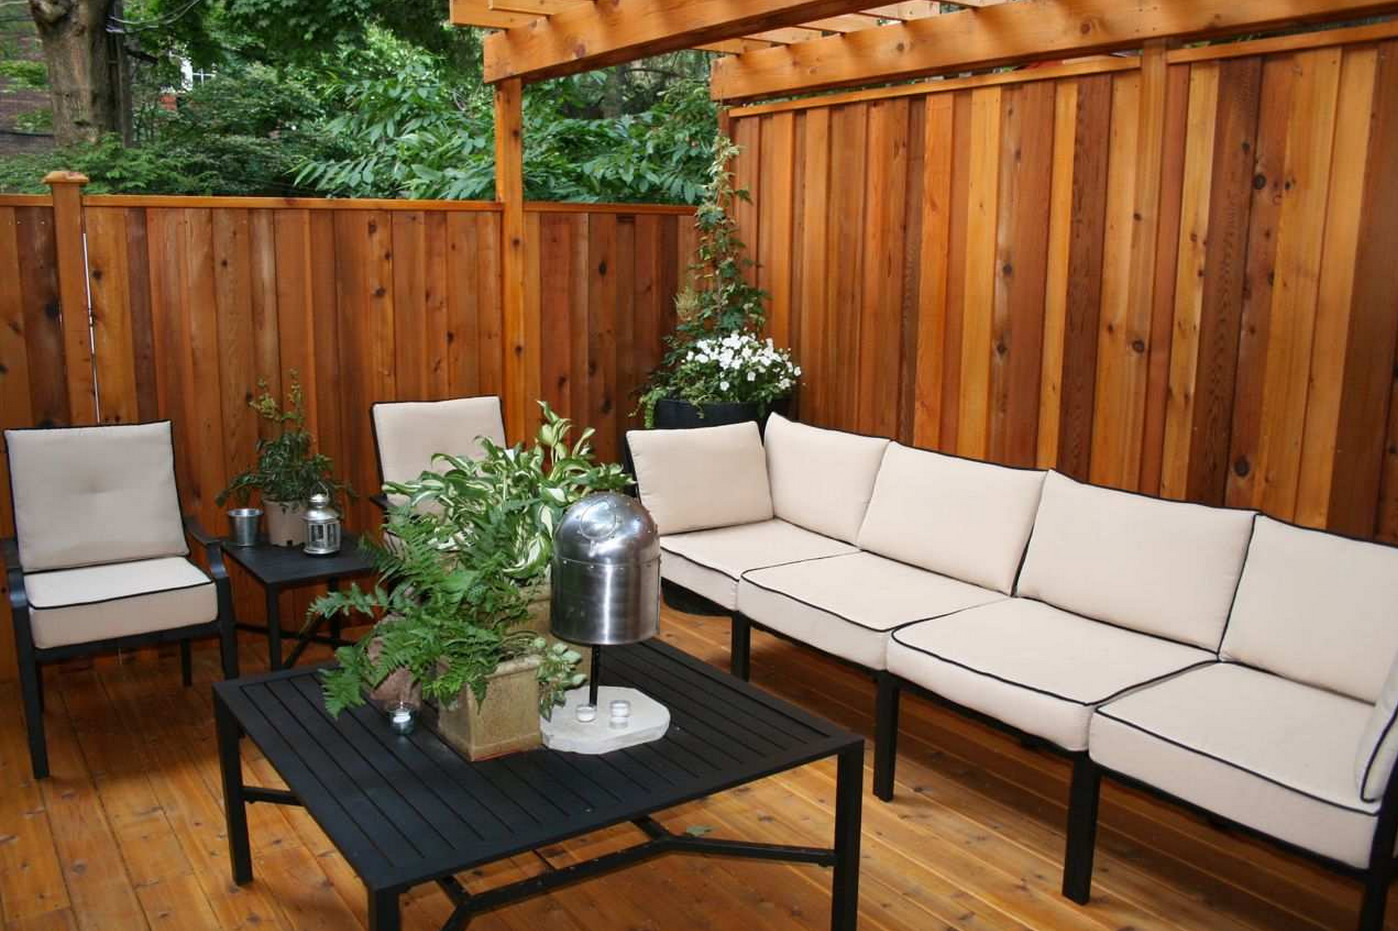 Deck with a privacy wall interesting ideas for home Deck design ideas